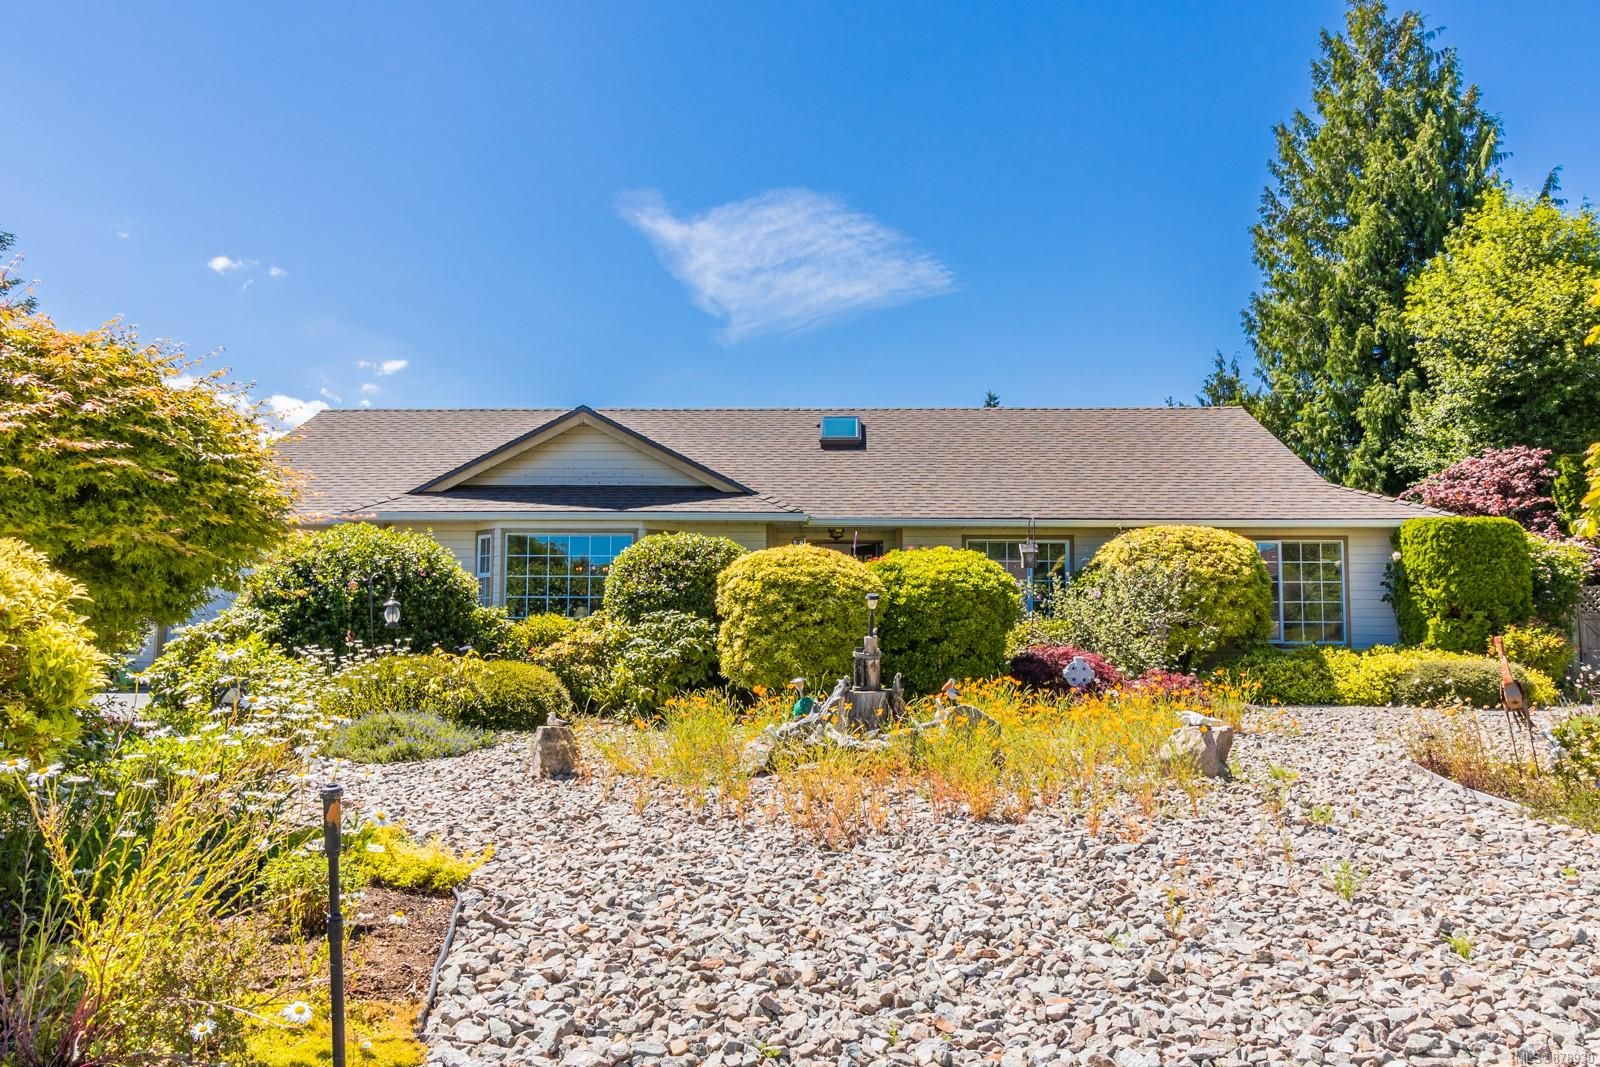 Main Photo: 505 Willow St in : PQ Parksville House for sale (Parksville/Qualicum)  : MLS®# 878930